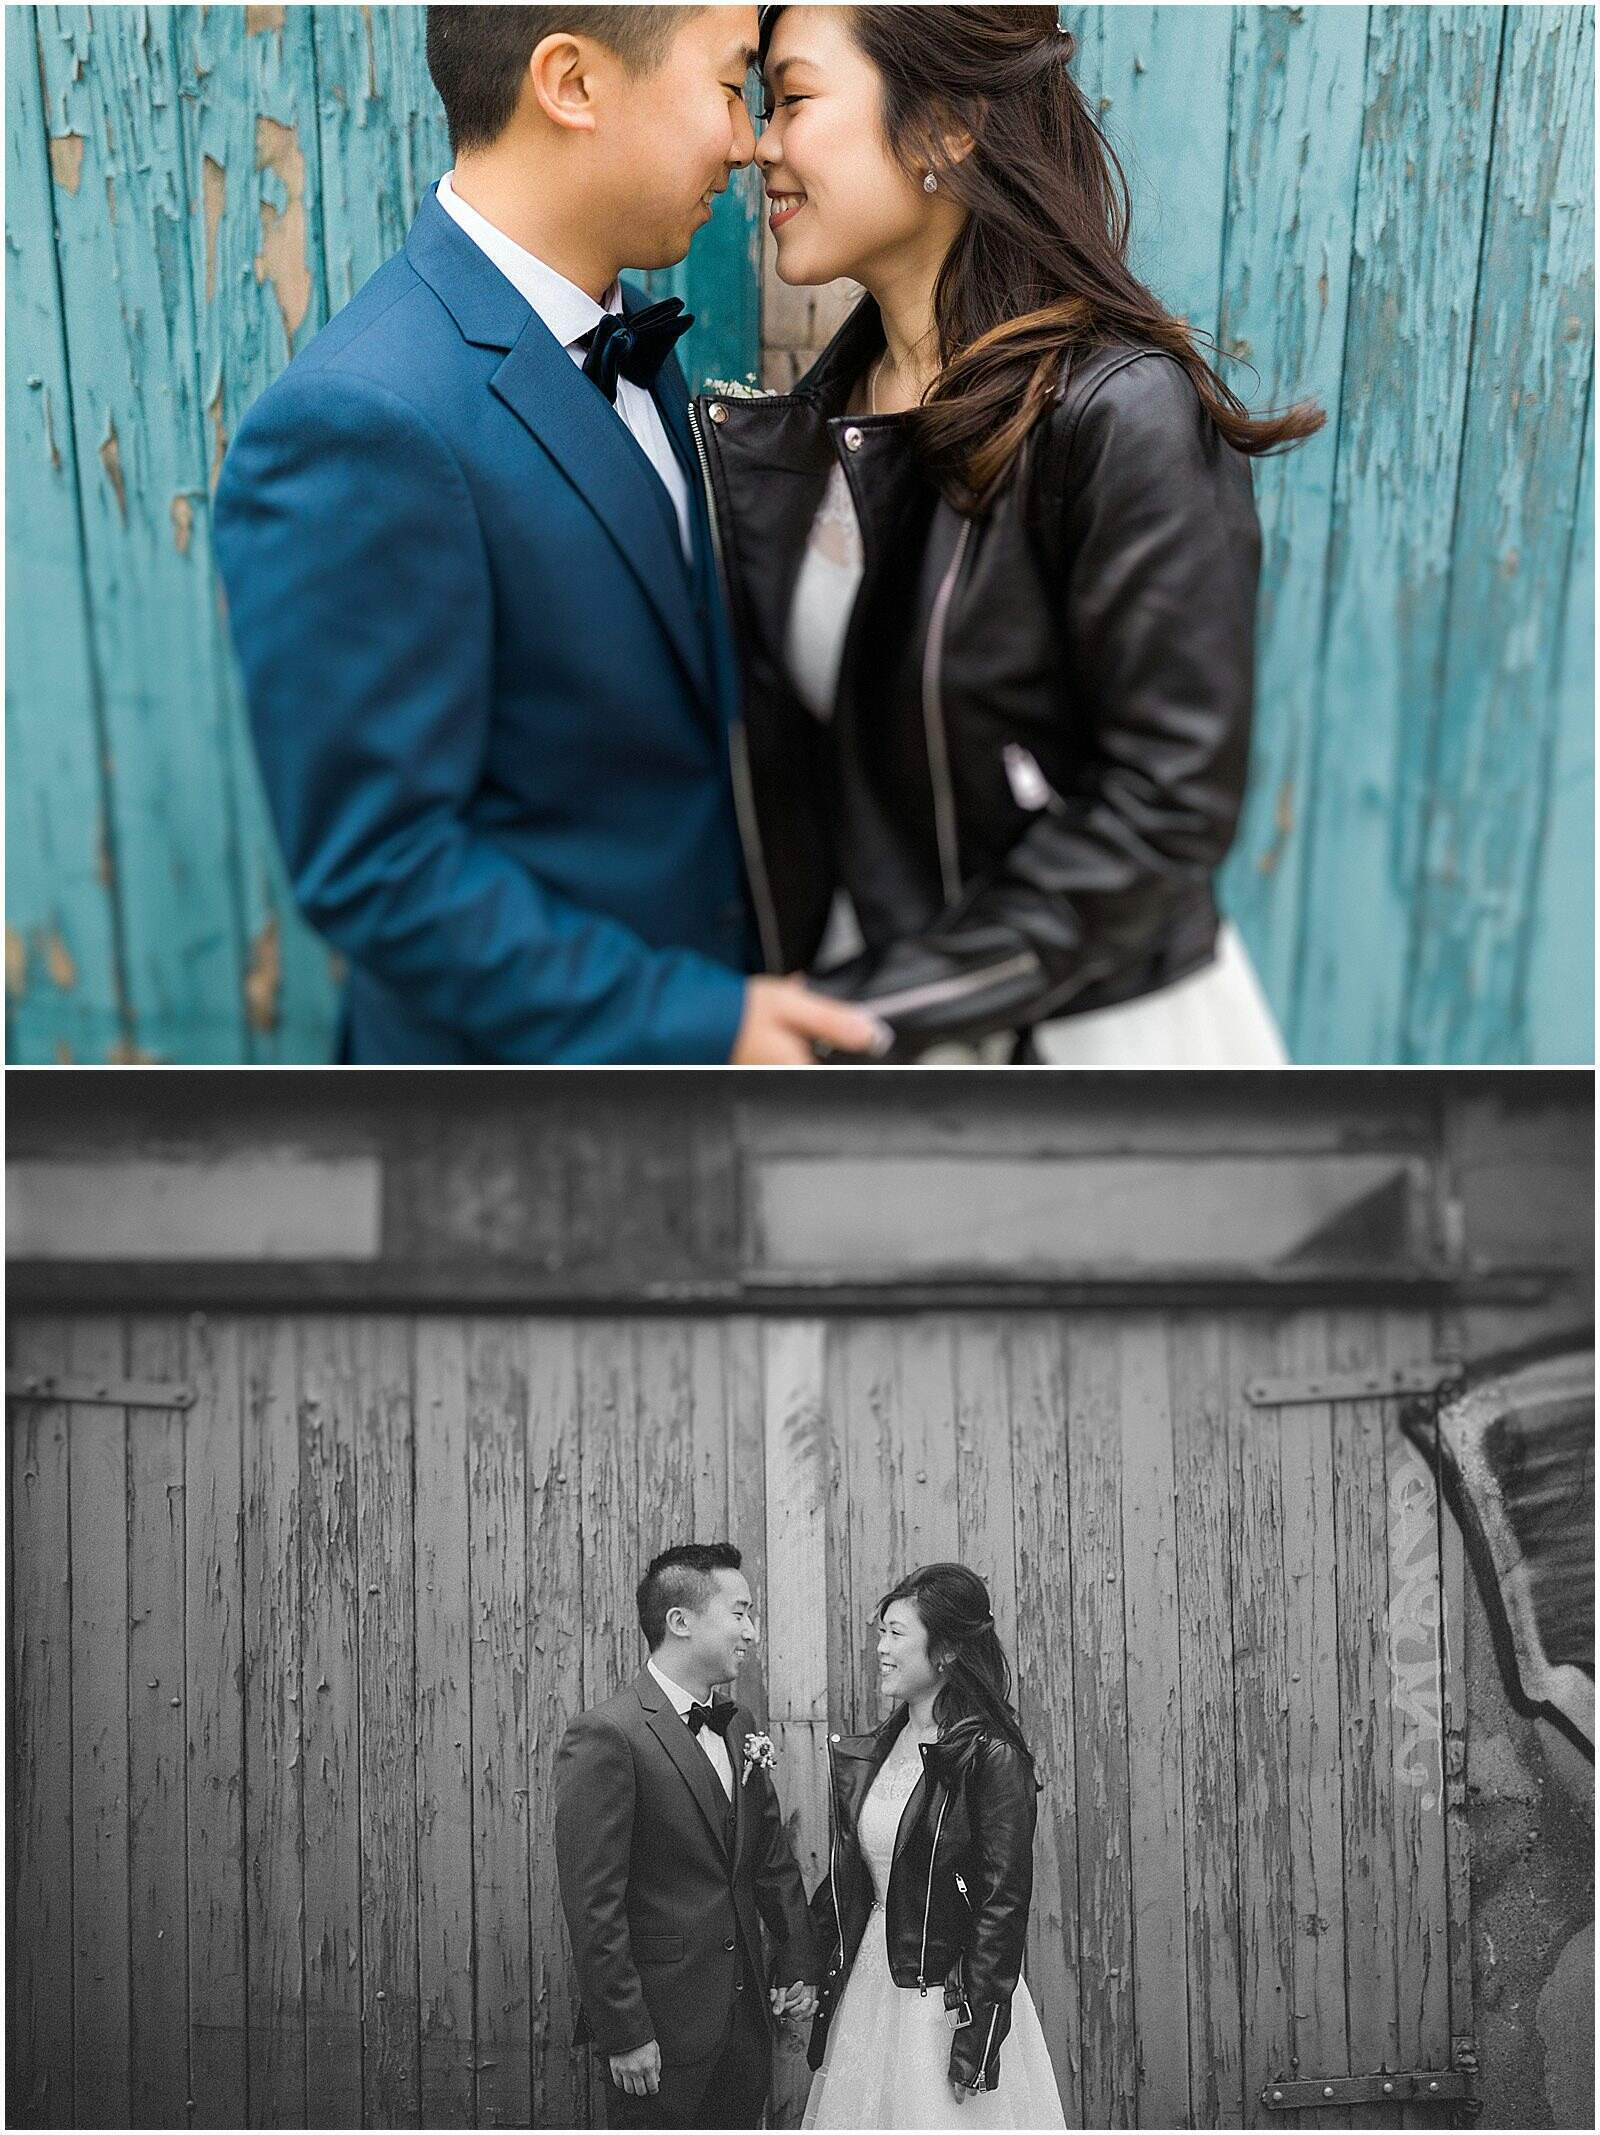 Sandy + Shekman - Elopement in Dublin City 3